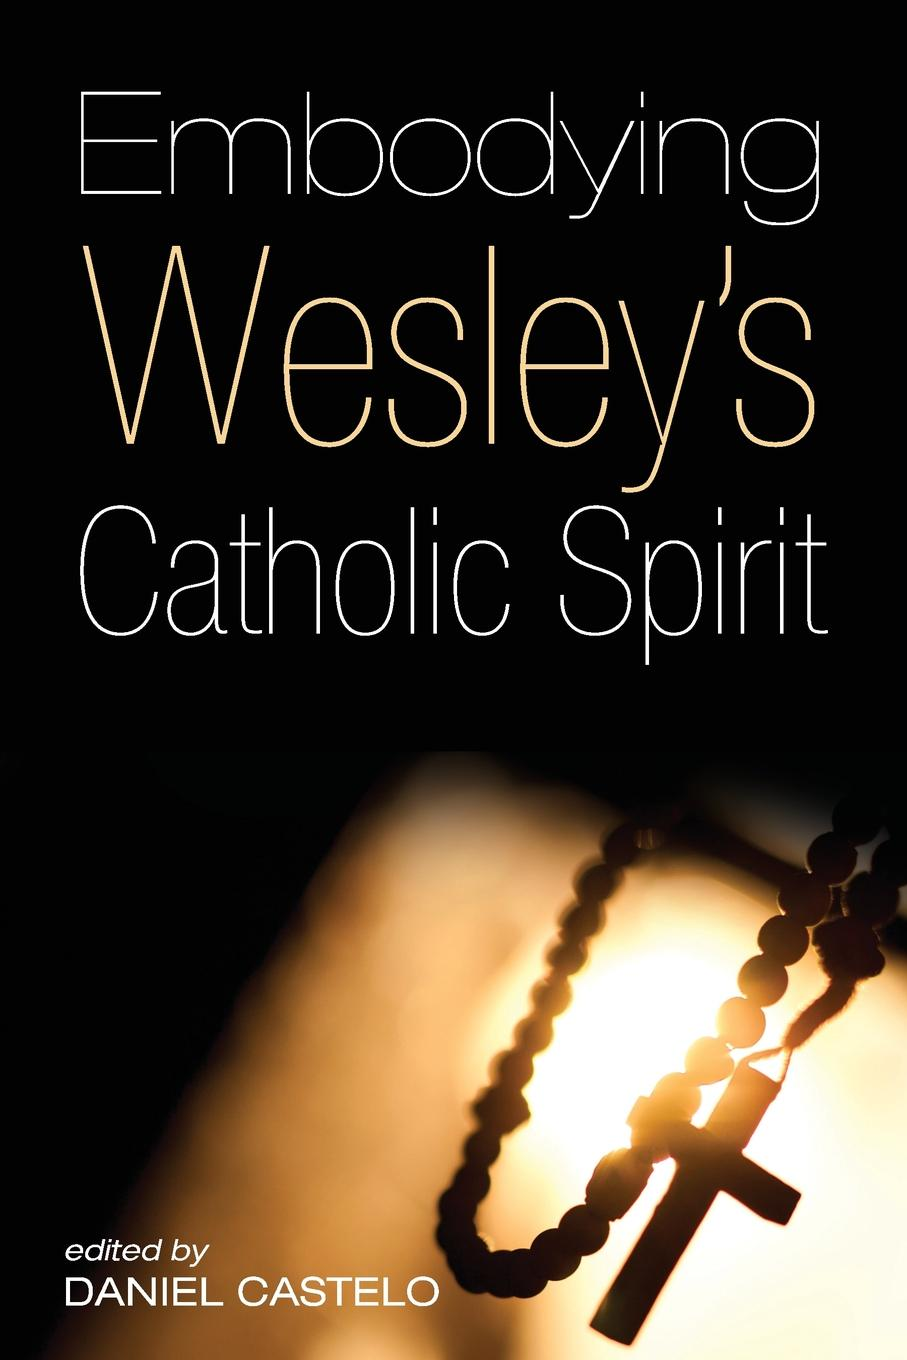 Embodying Wesley.s Catholic Spirit women can be priests in the catholic church a hermeneutical study